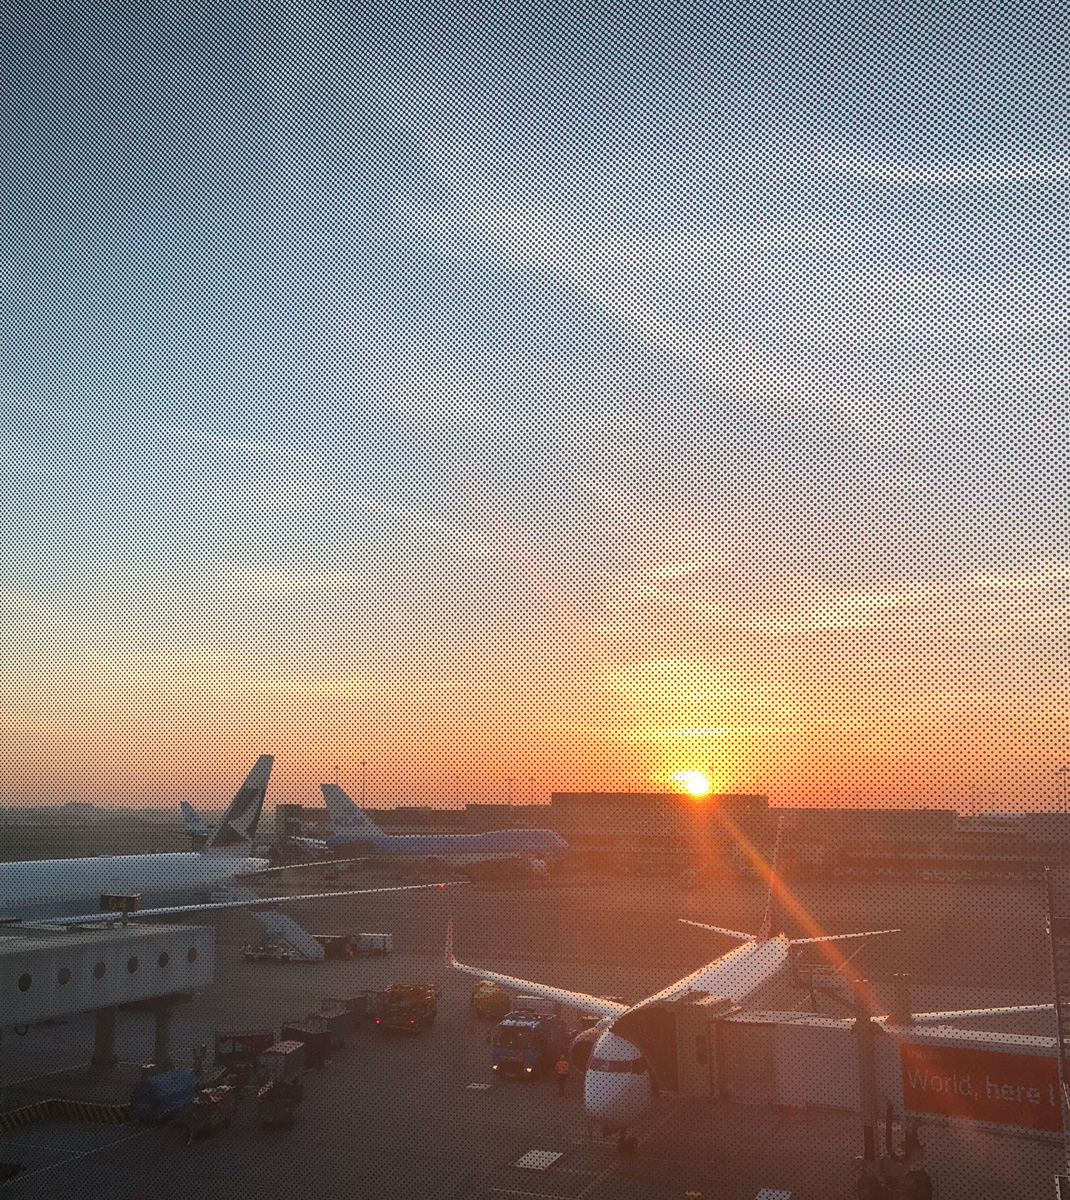 It was a lovely morning when I touched down in Amsterdam